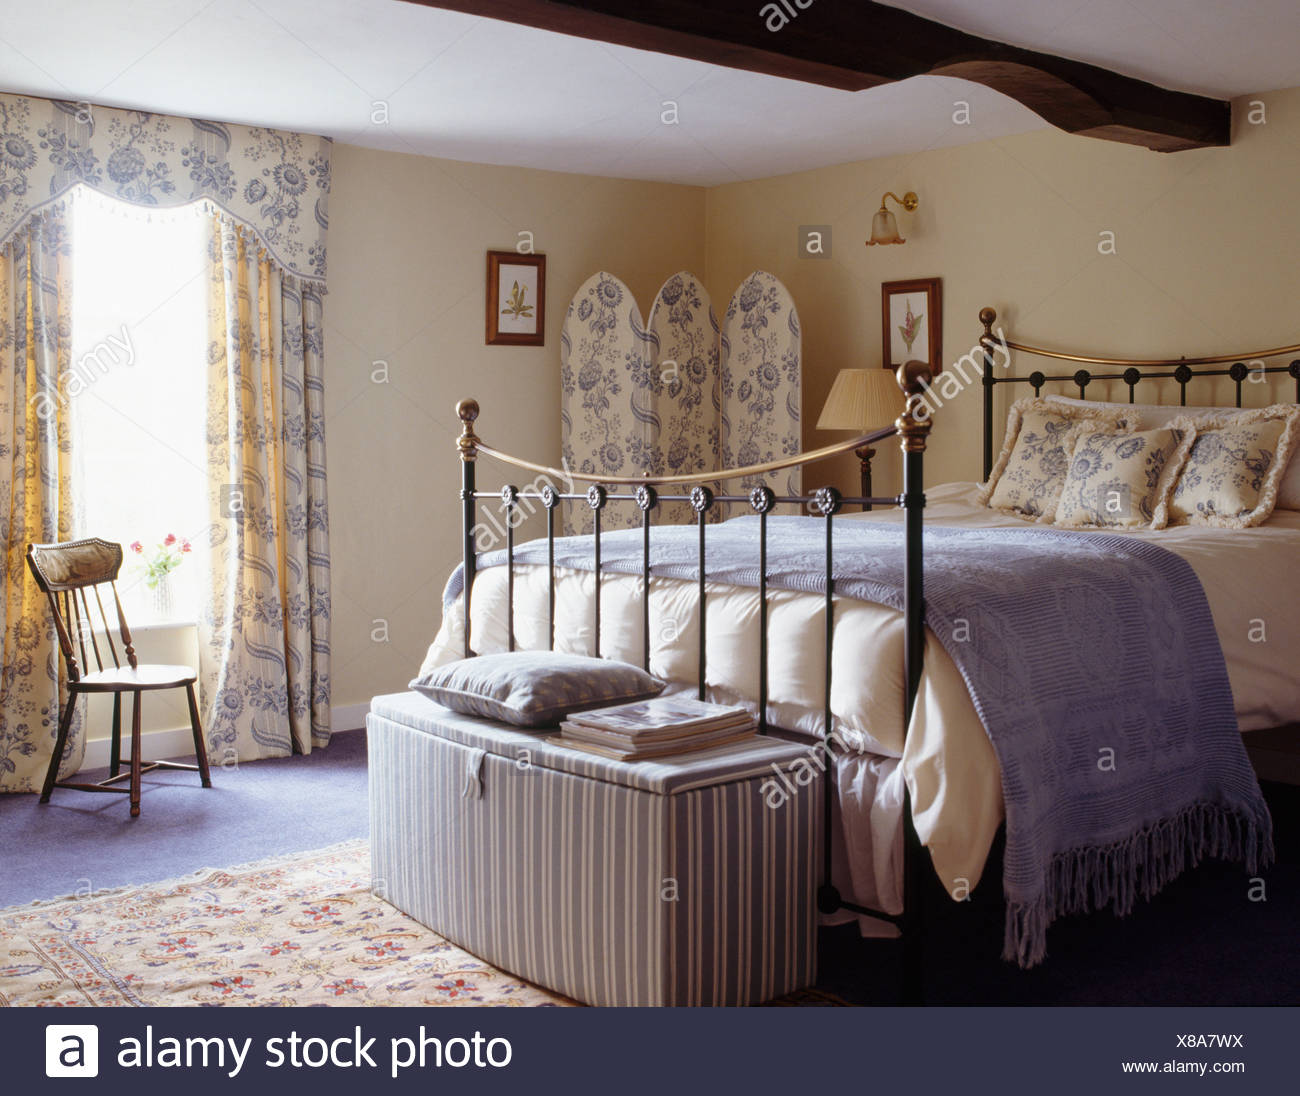 Striped ottoman below brass bed in country bedroom with blue+white ...